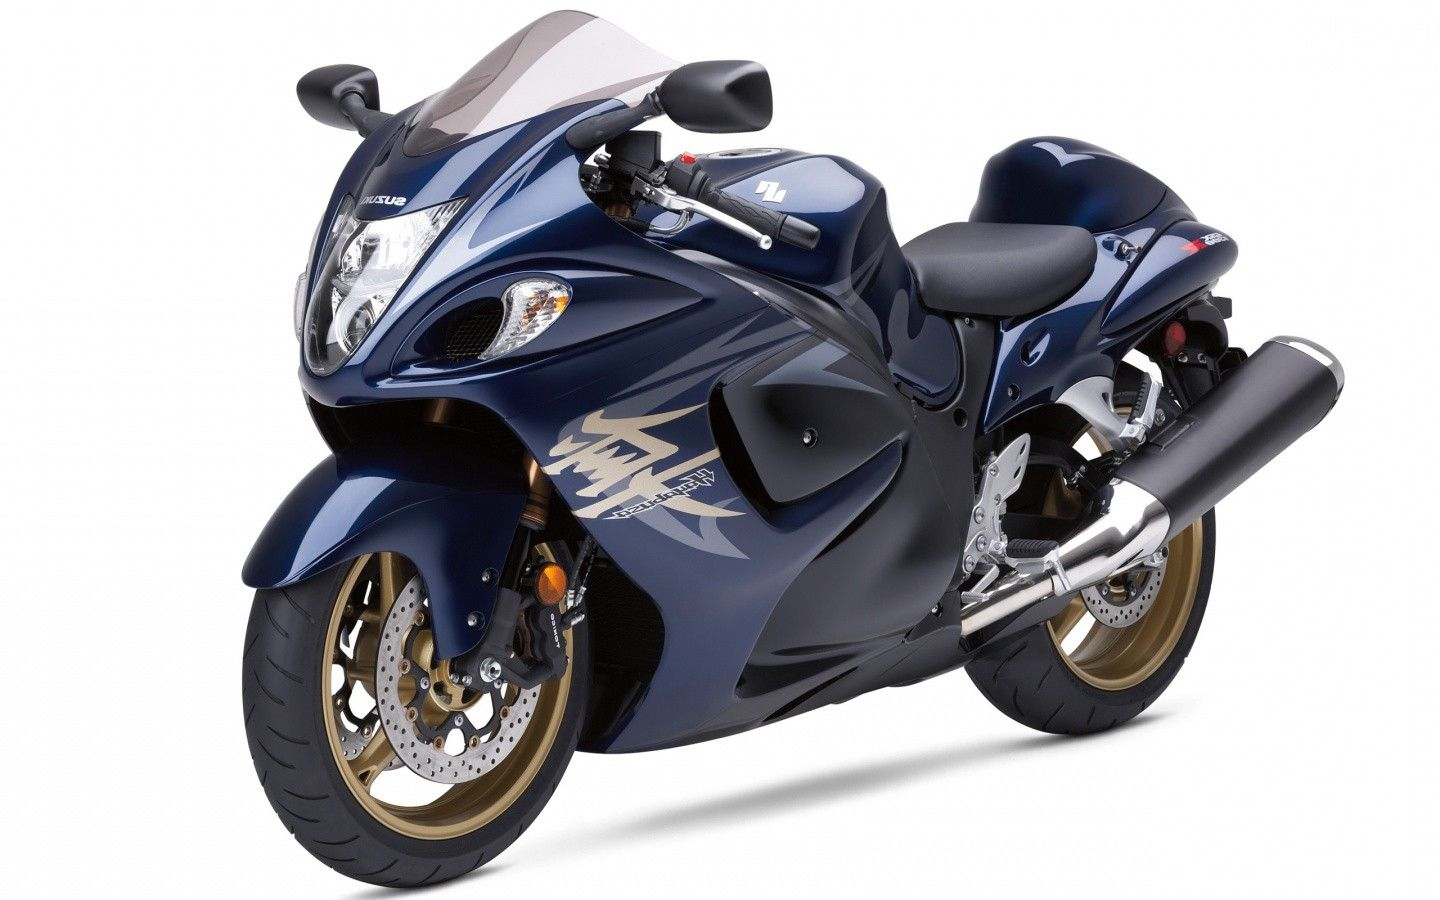 hayabusa-suzuki-bike-blue-color-hd-wallpaper | Suzuki Bike ...